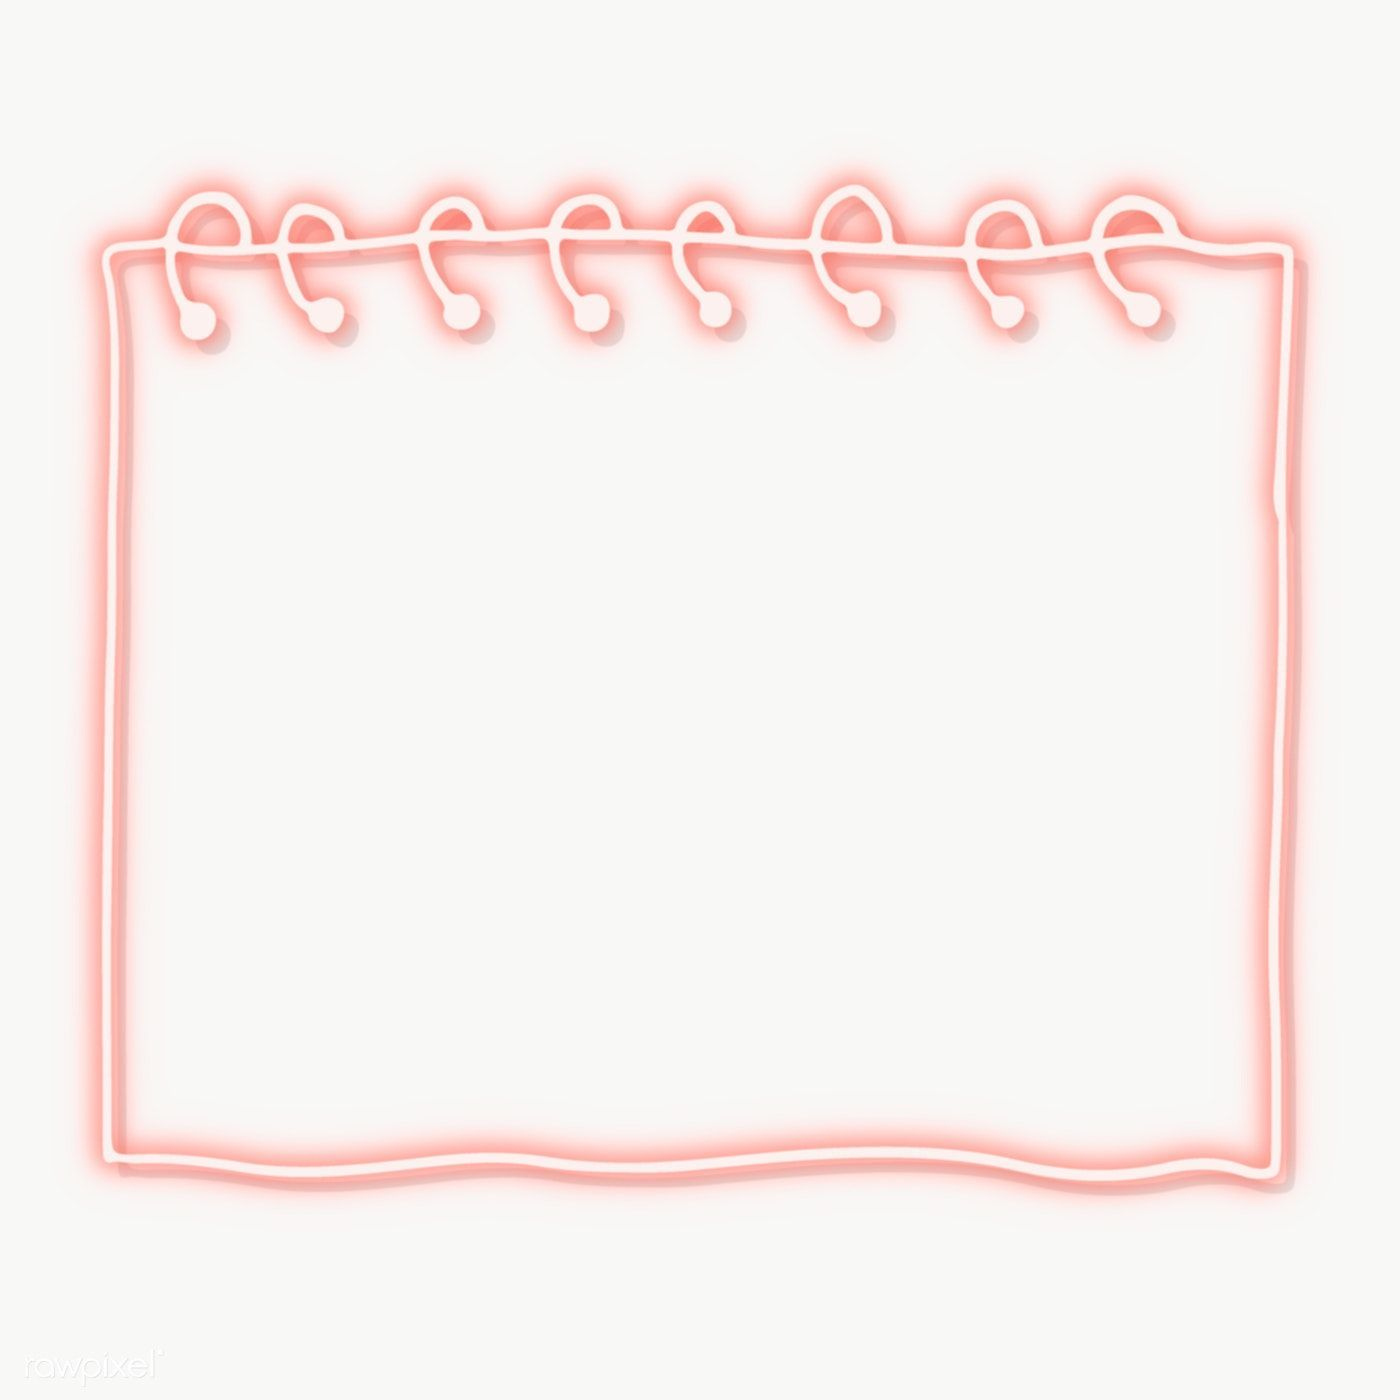 Download Premium Png Of Pink Neon Paper Note Transparent Png 2100707 The Best Design Resource Pink Neon P Note Paper Doodle Frame Paper Background Texture